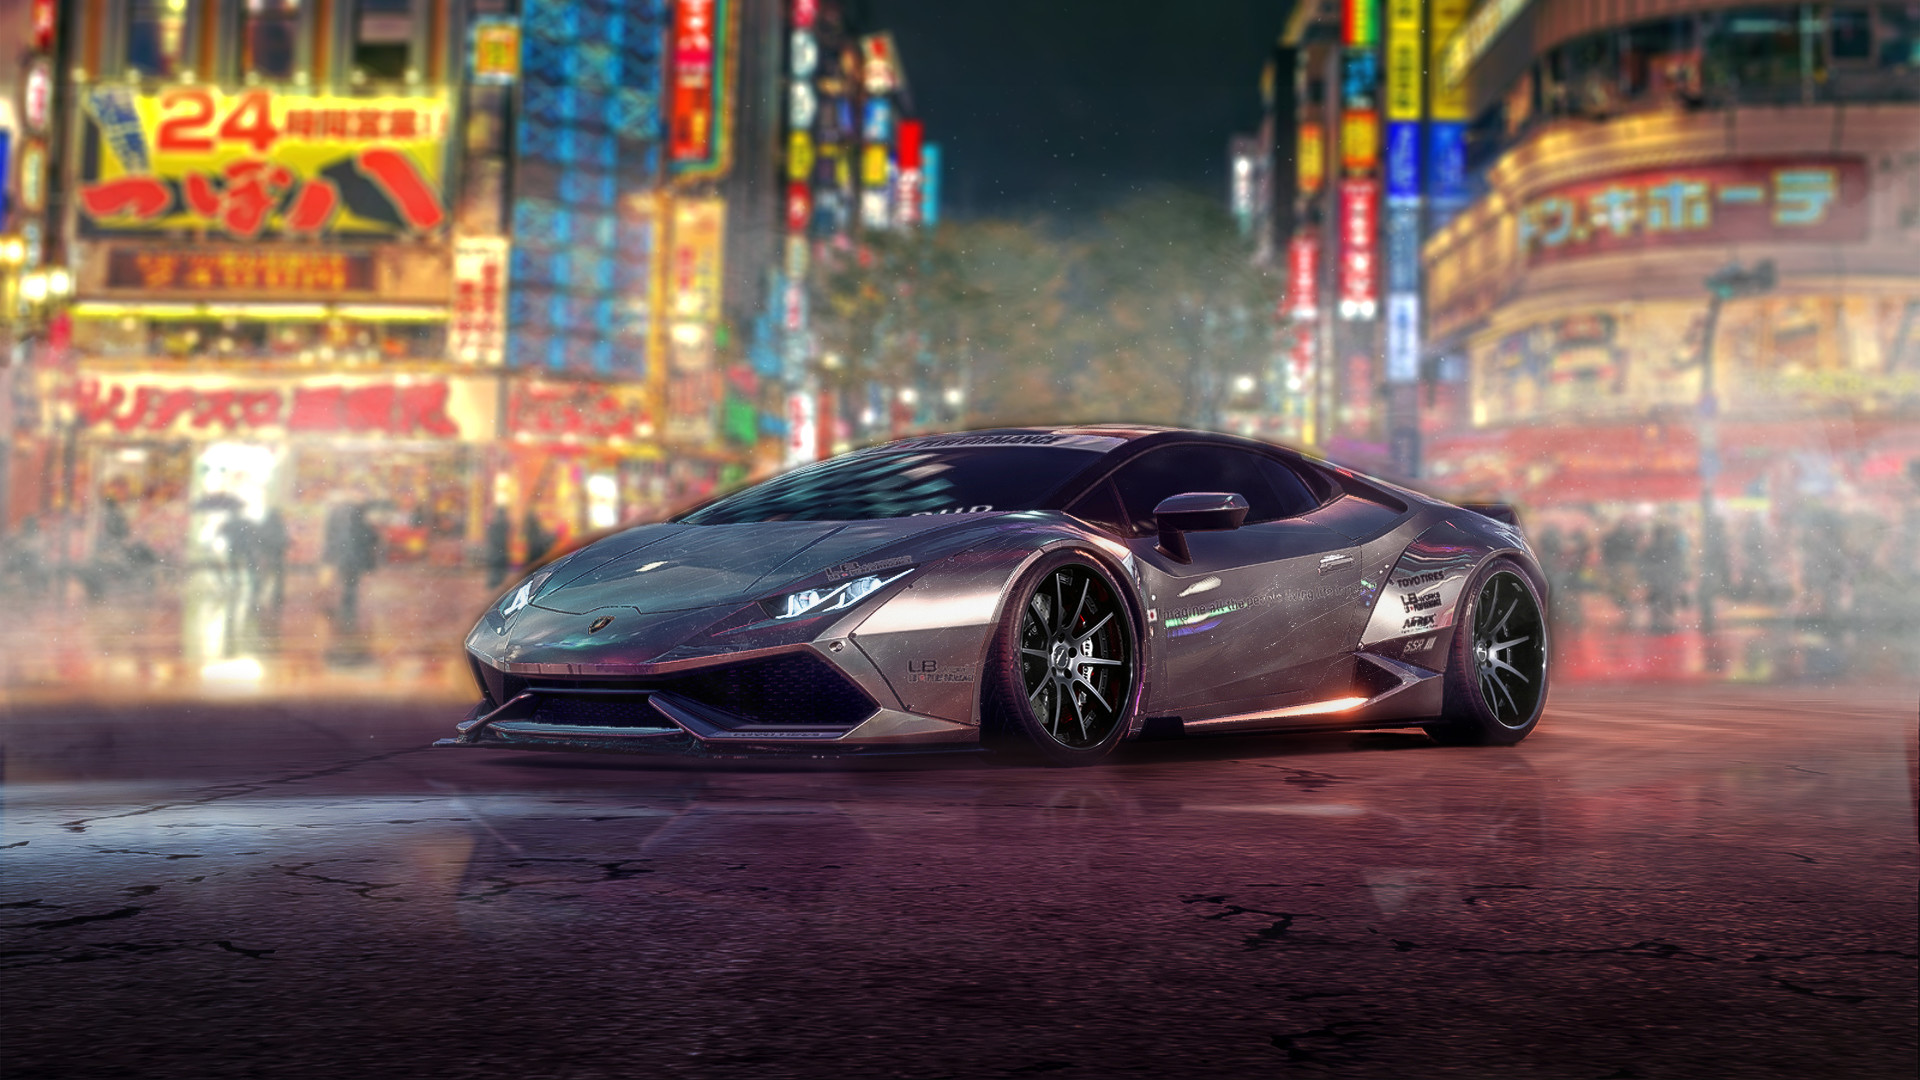 Nfs Payback Lamborghini Hd Cars 4k Wallpapers Images Backgrounds